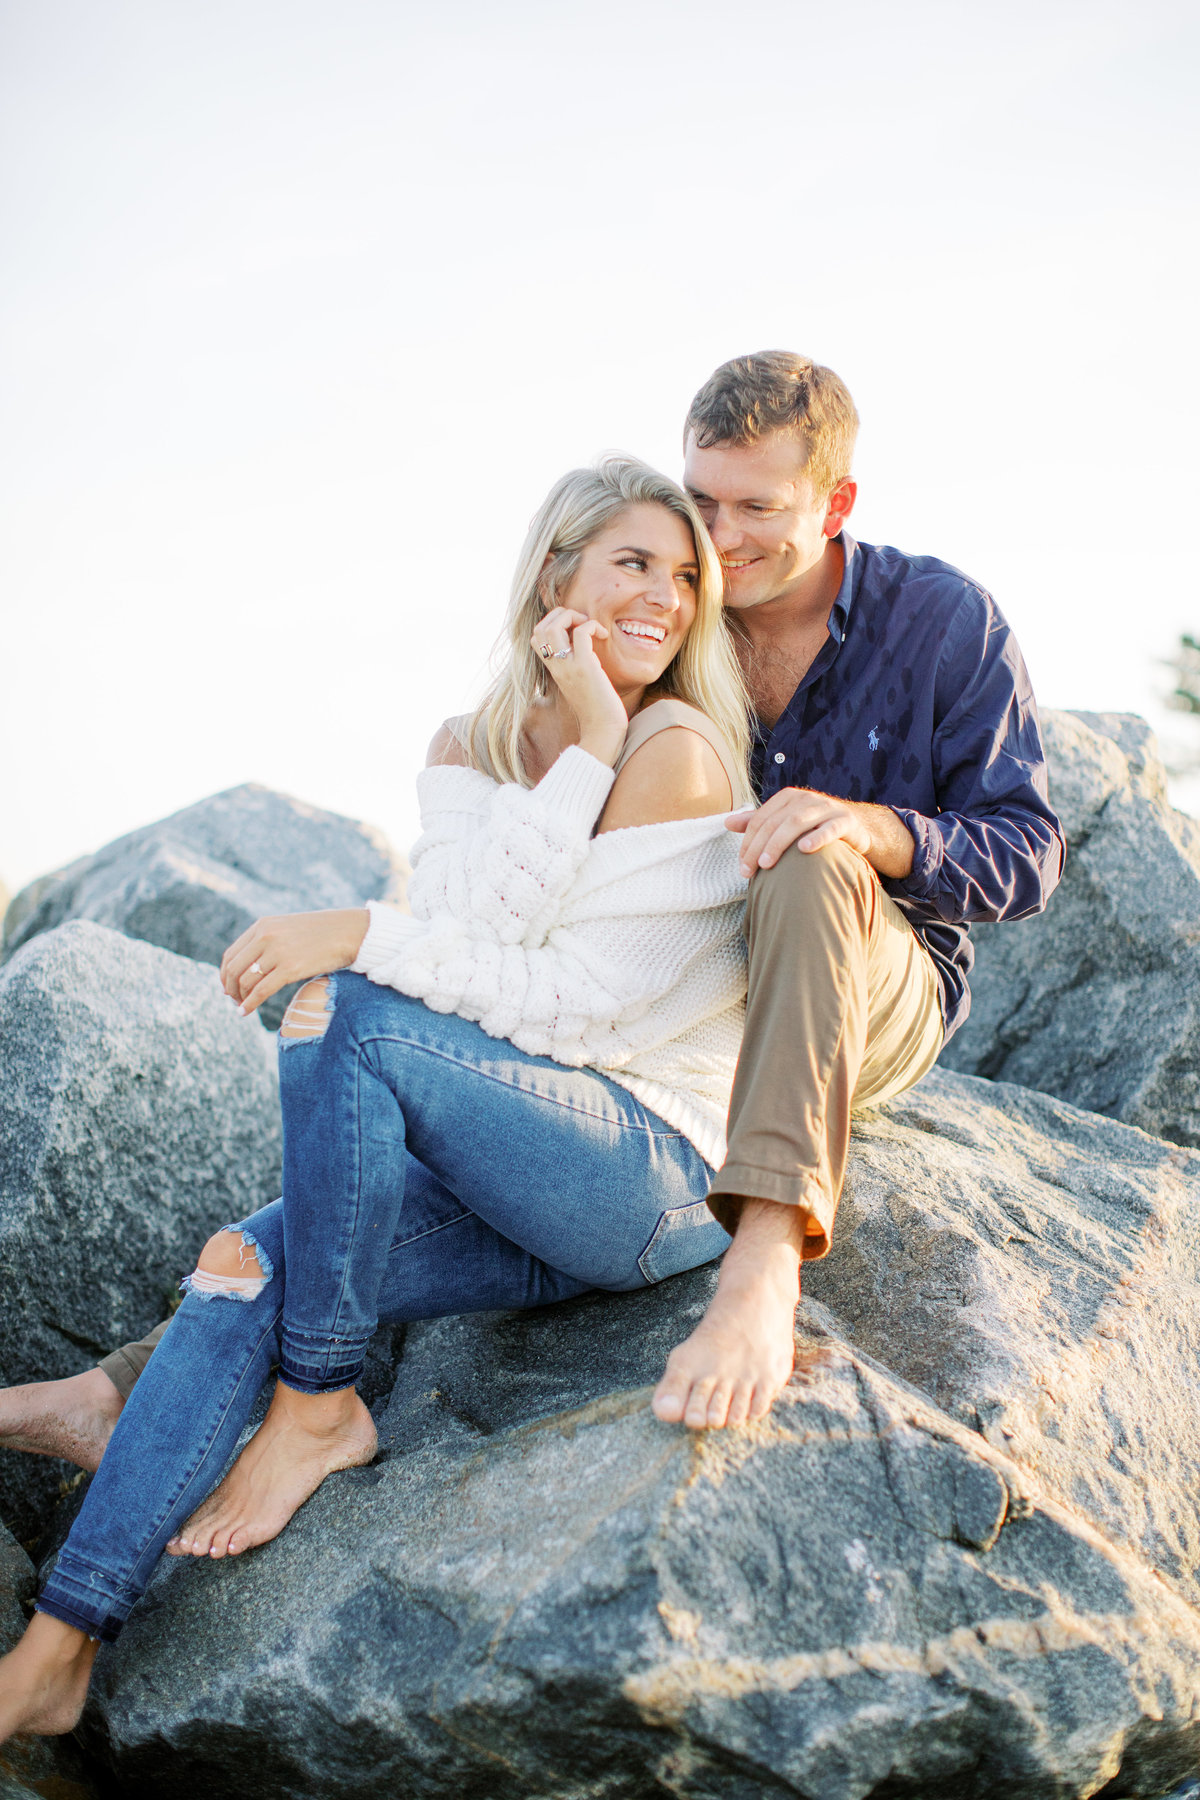 cape henlopen engagement photos11